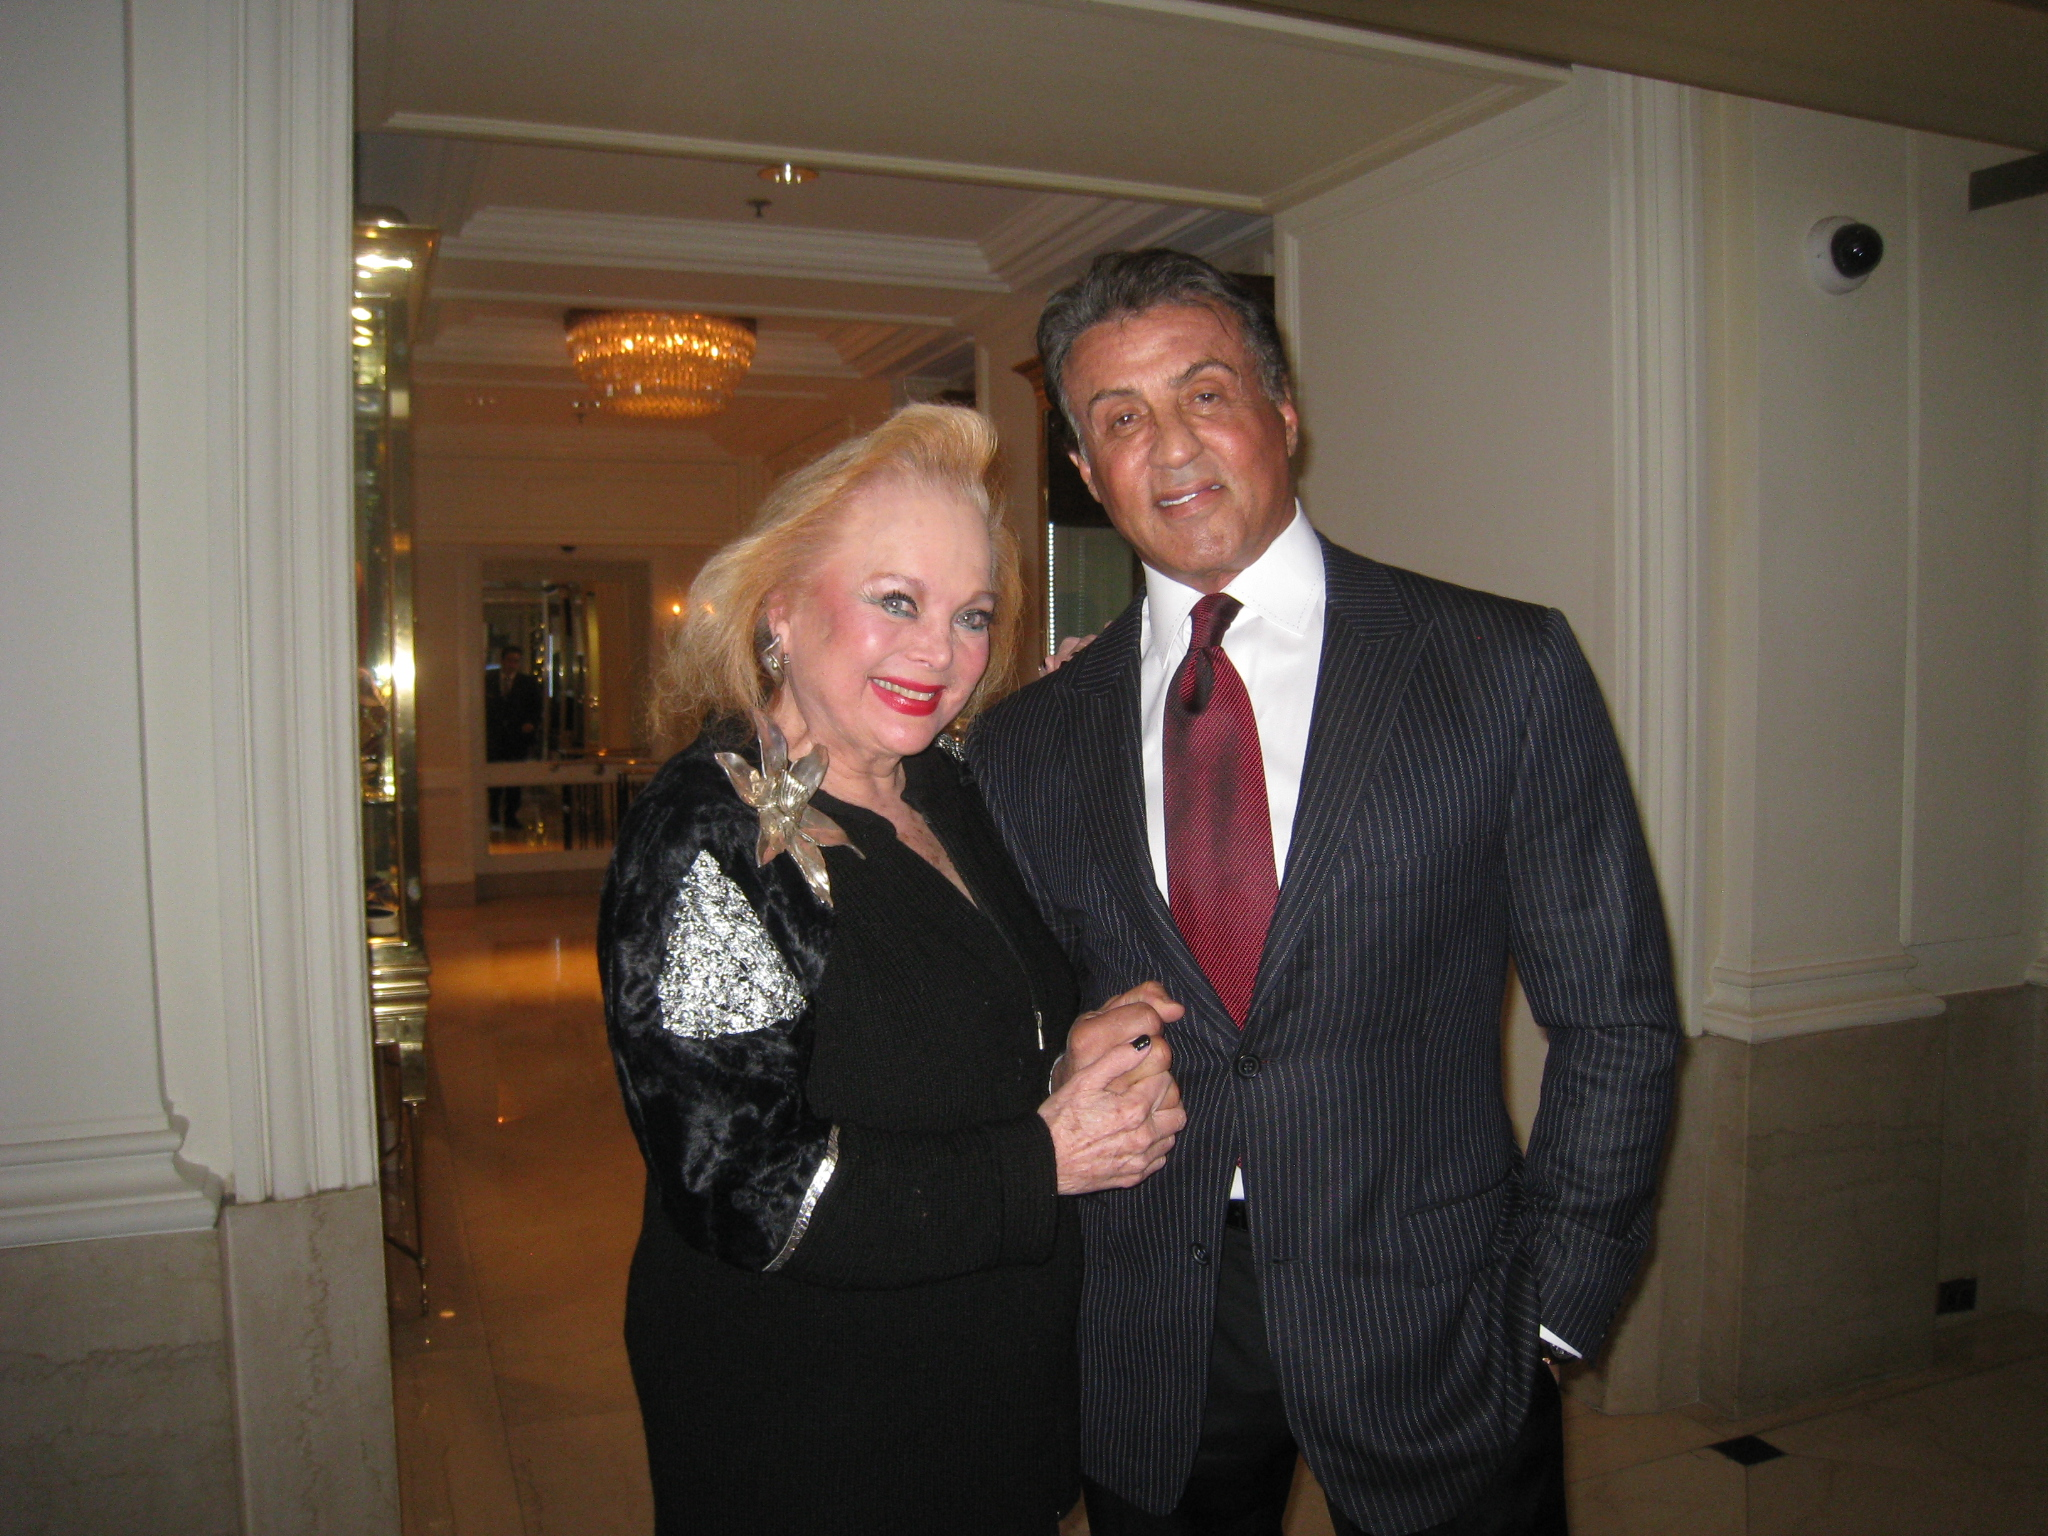 Carol Connors & Sylvester Stallone